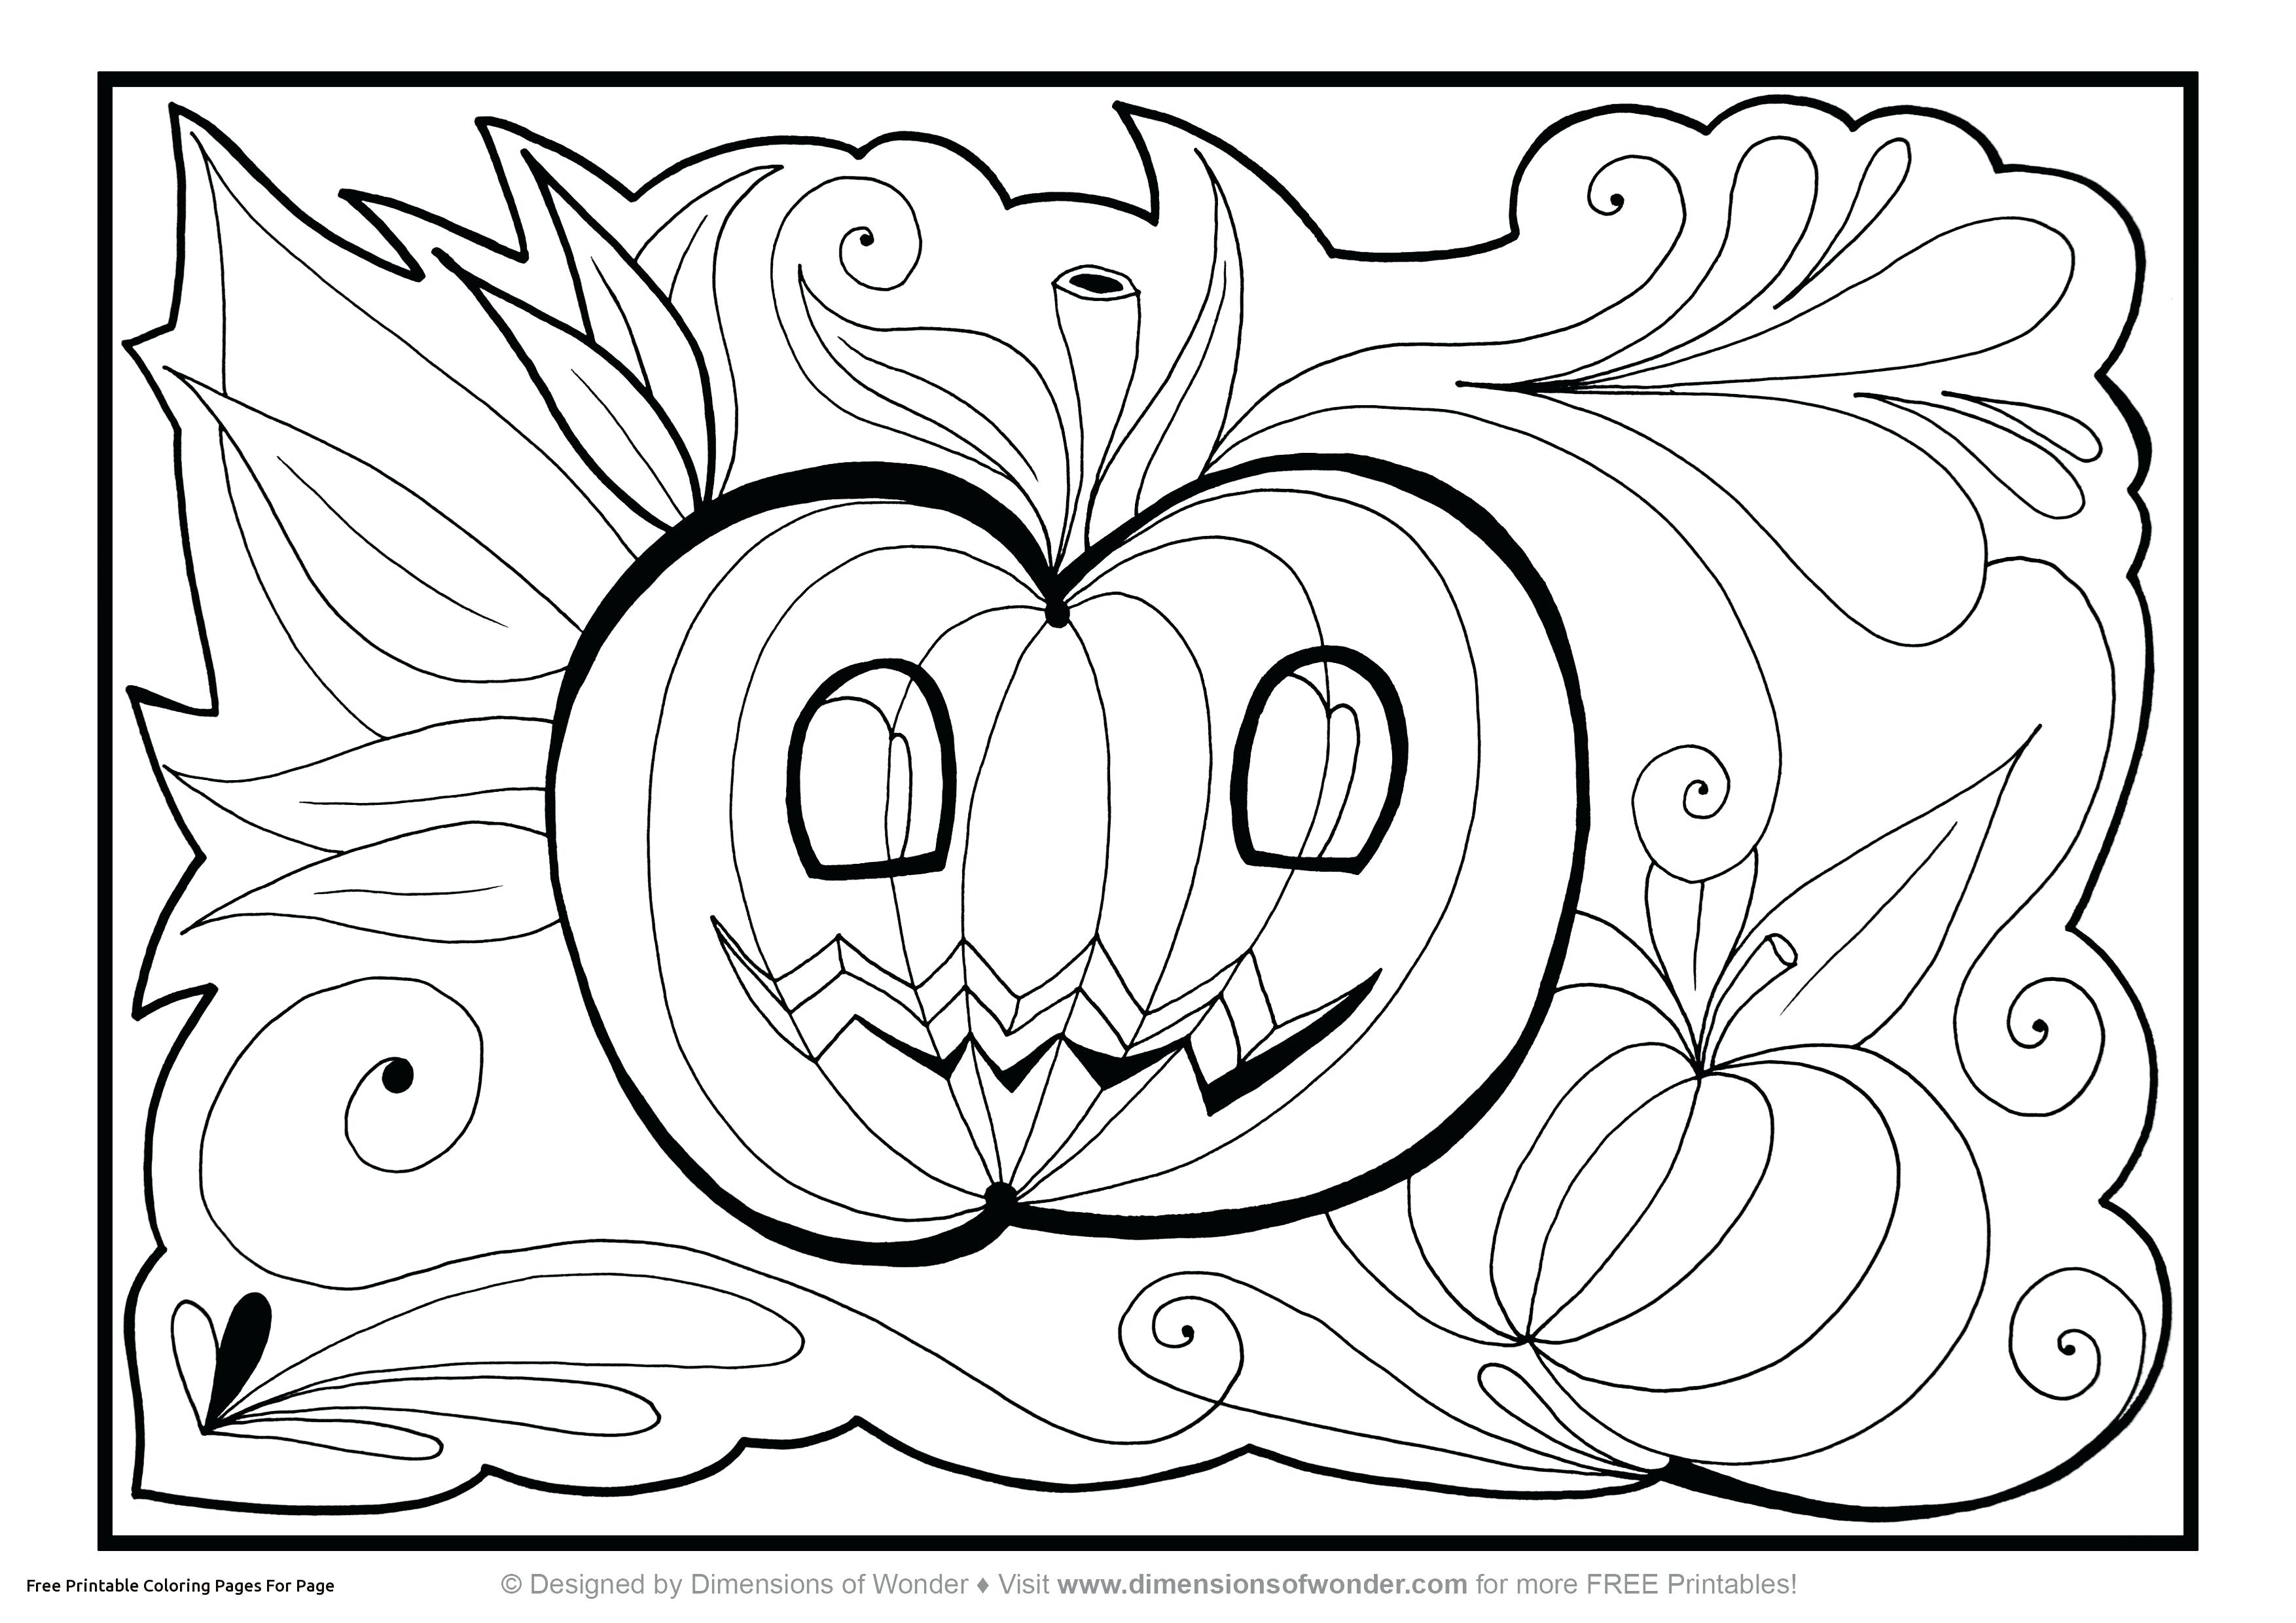 Free Printable Charlie Brown Halloween Coloring Pages At